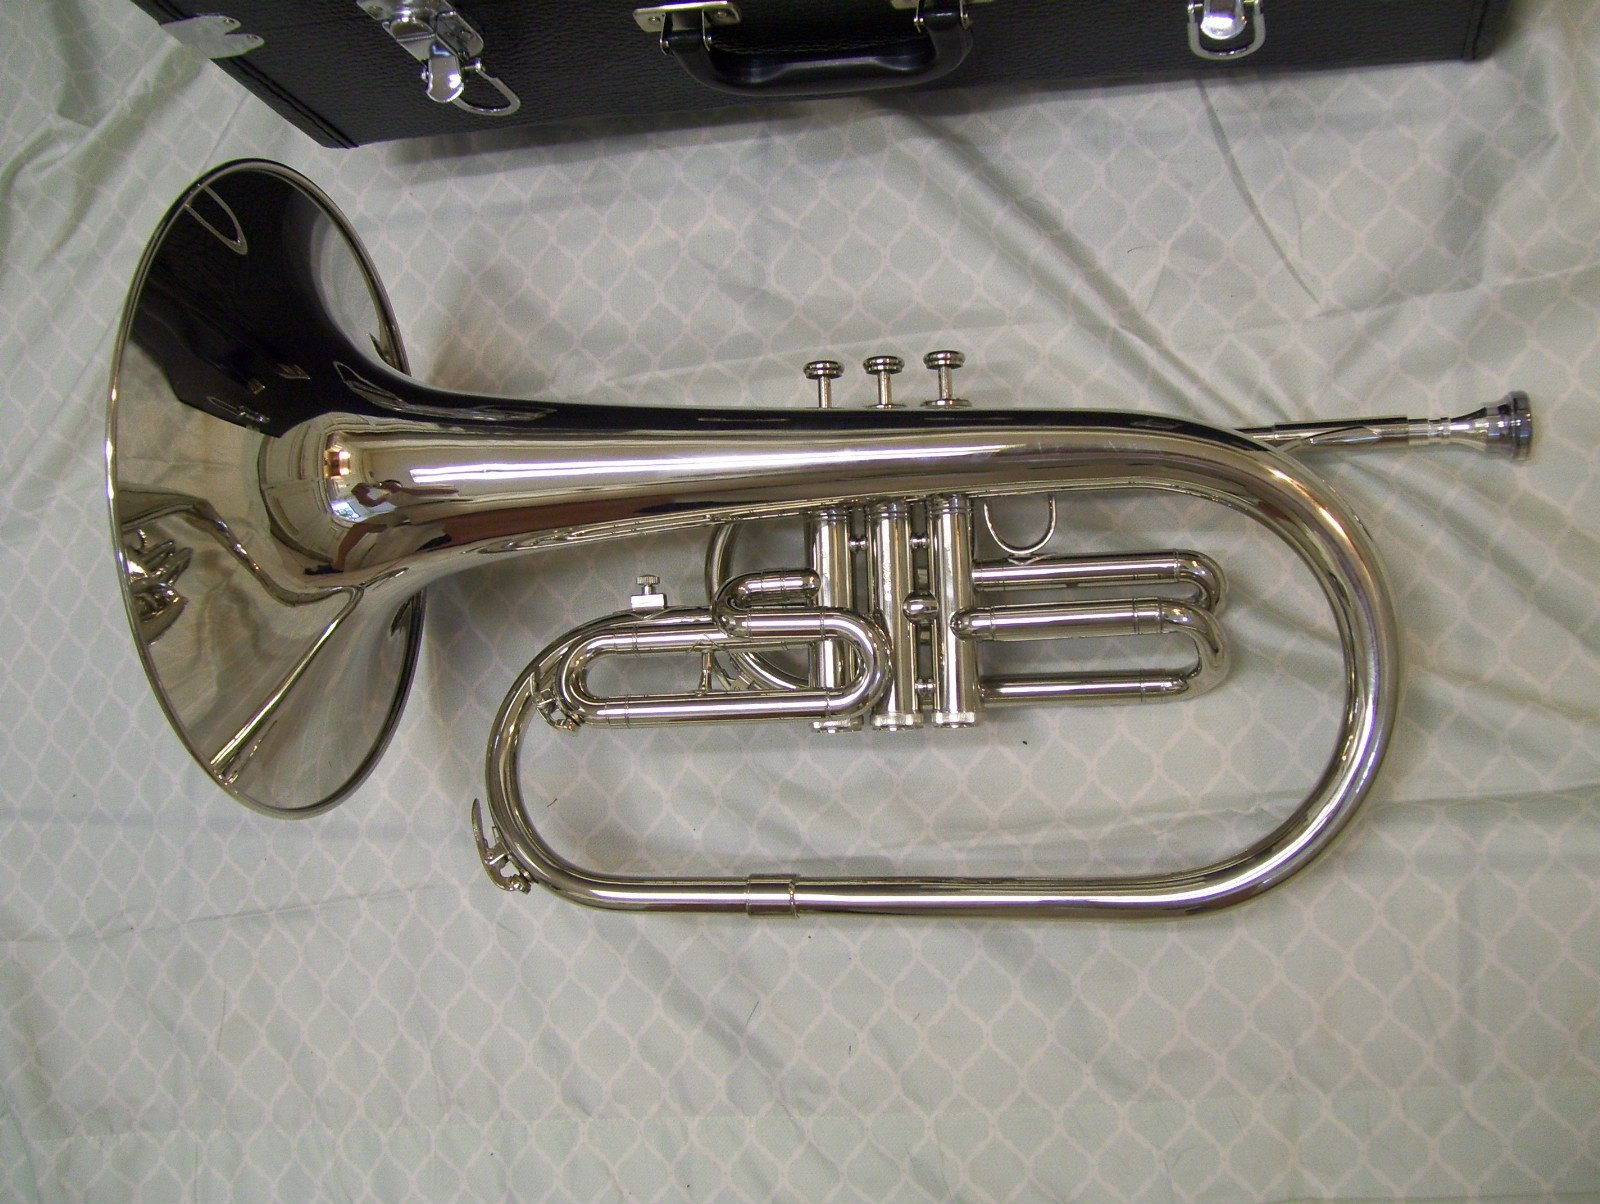 Mellophone with case and mouthpiece, Silver by Maestro (Image #2)